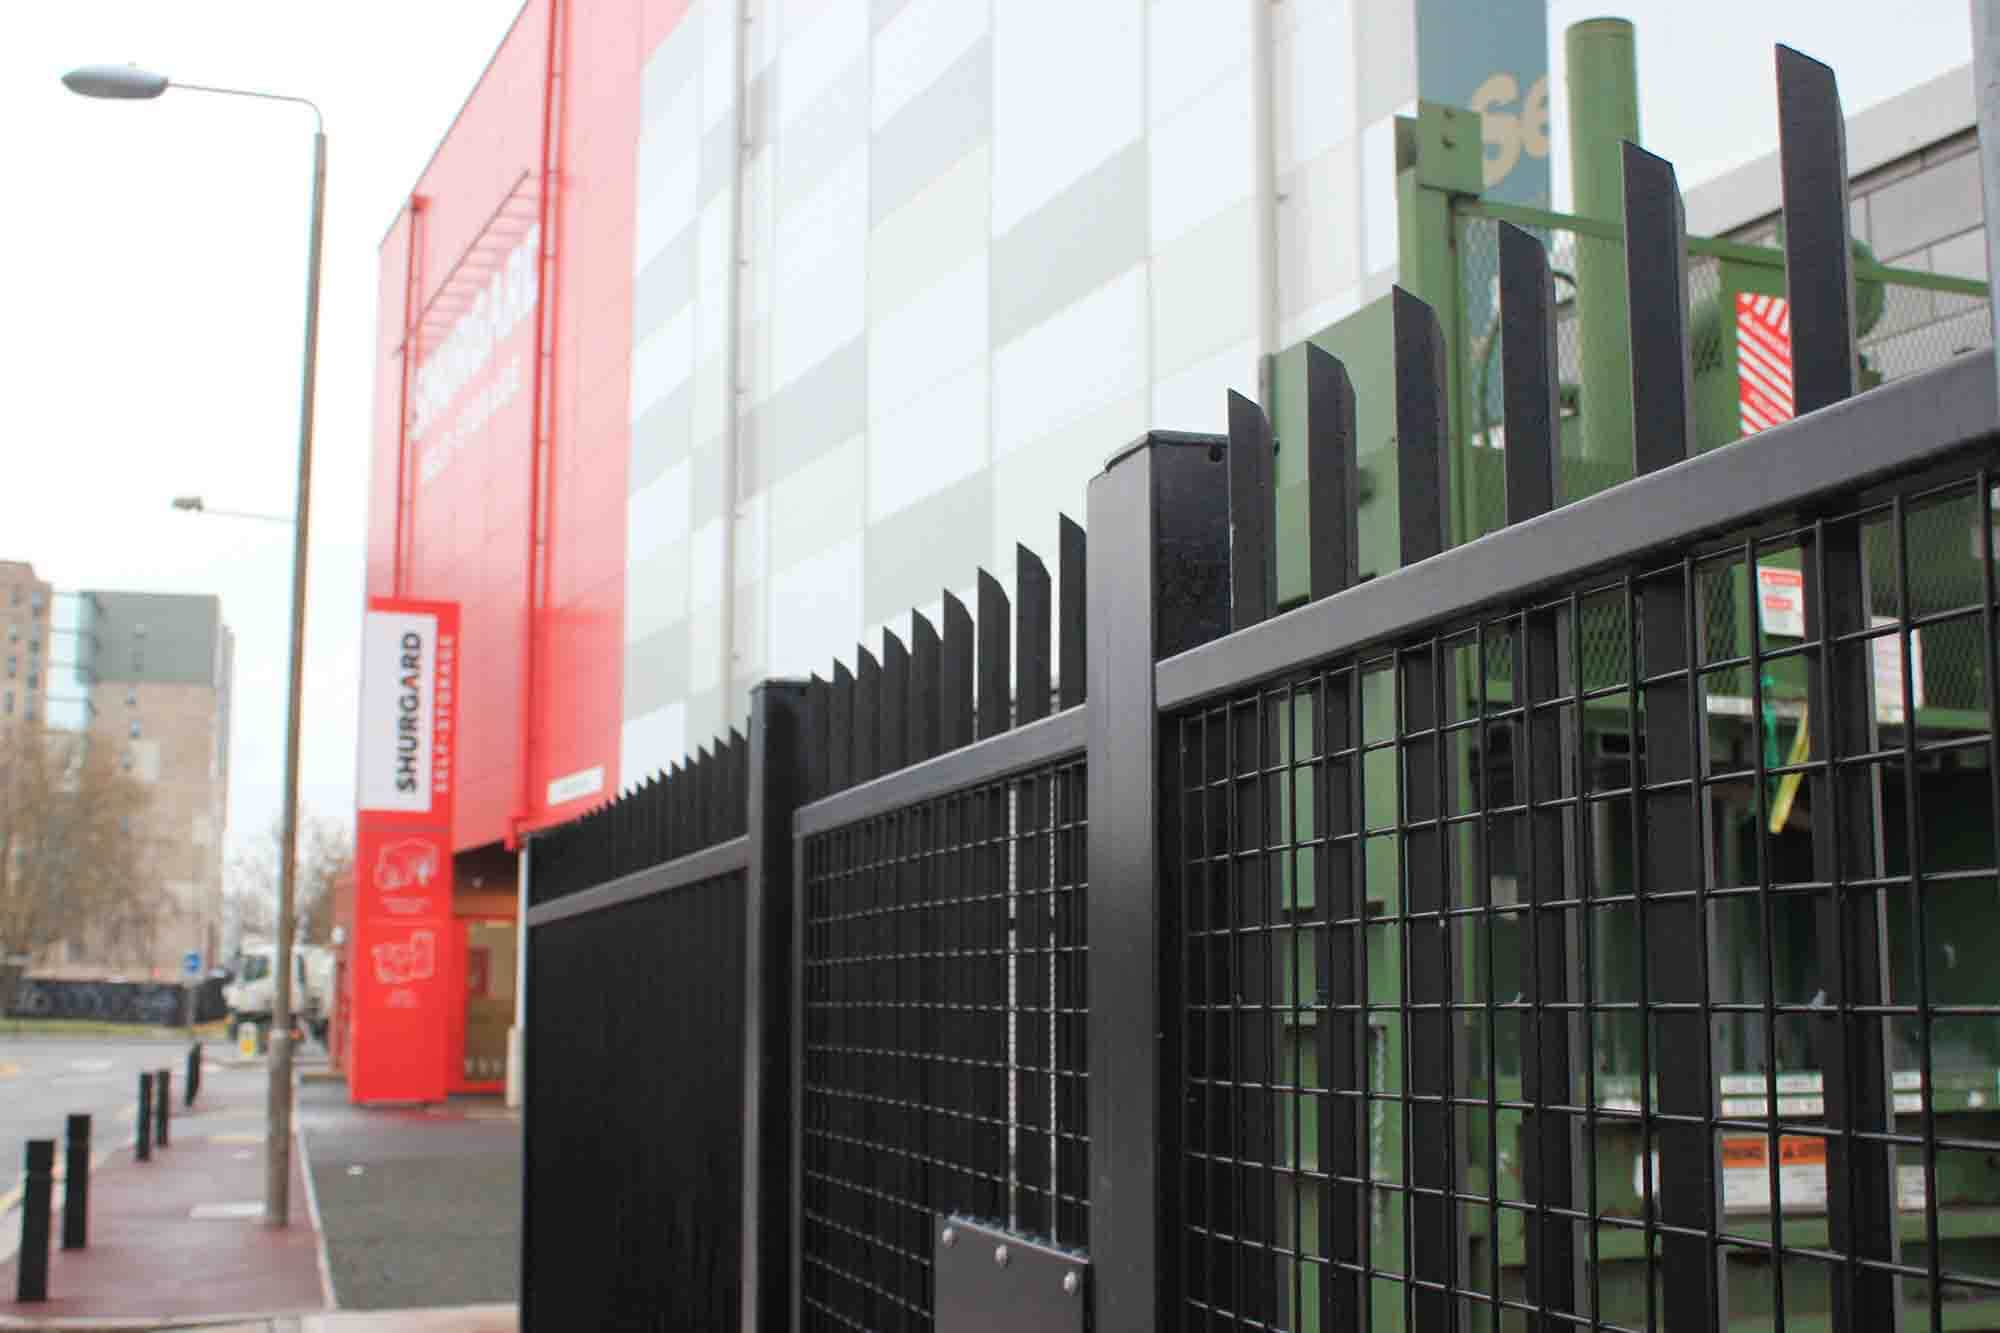 Vertical bar steel fencing